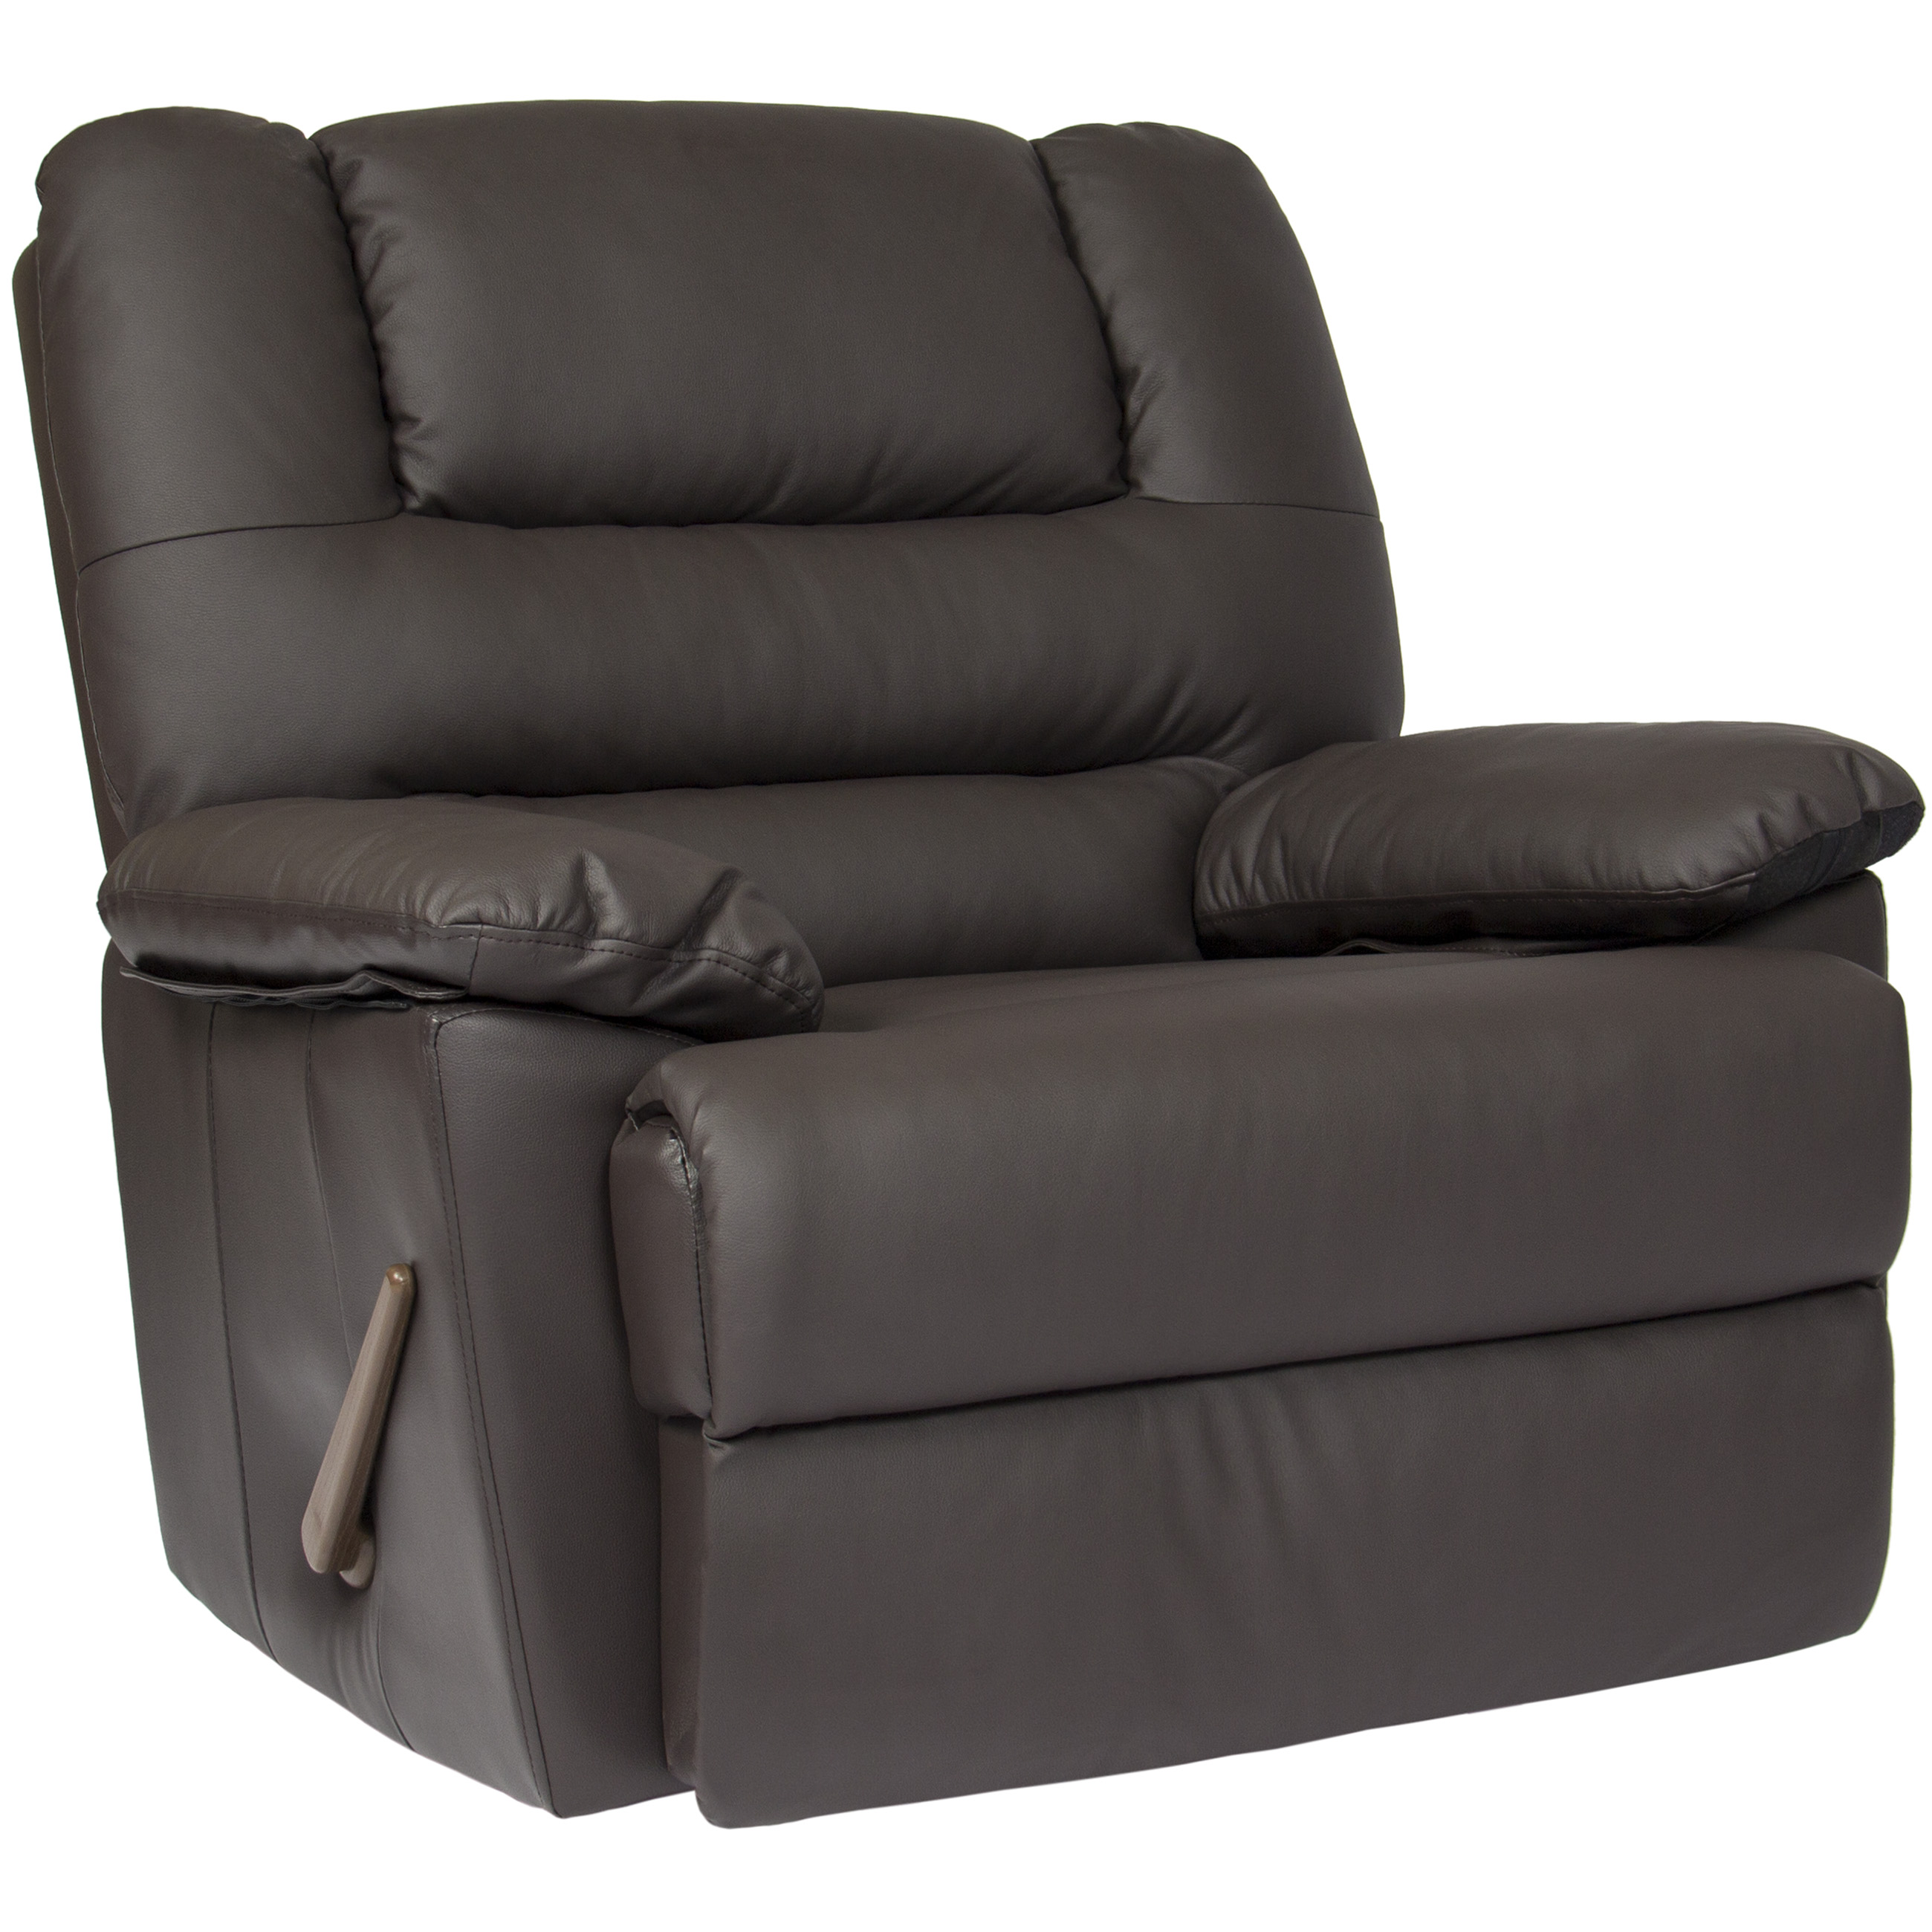 Best Choice Products Deluxe Padded Leather Rocking Recliner Chair (Brown)